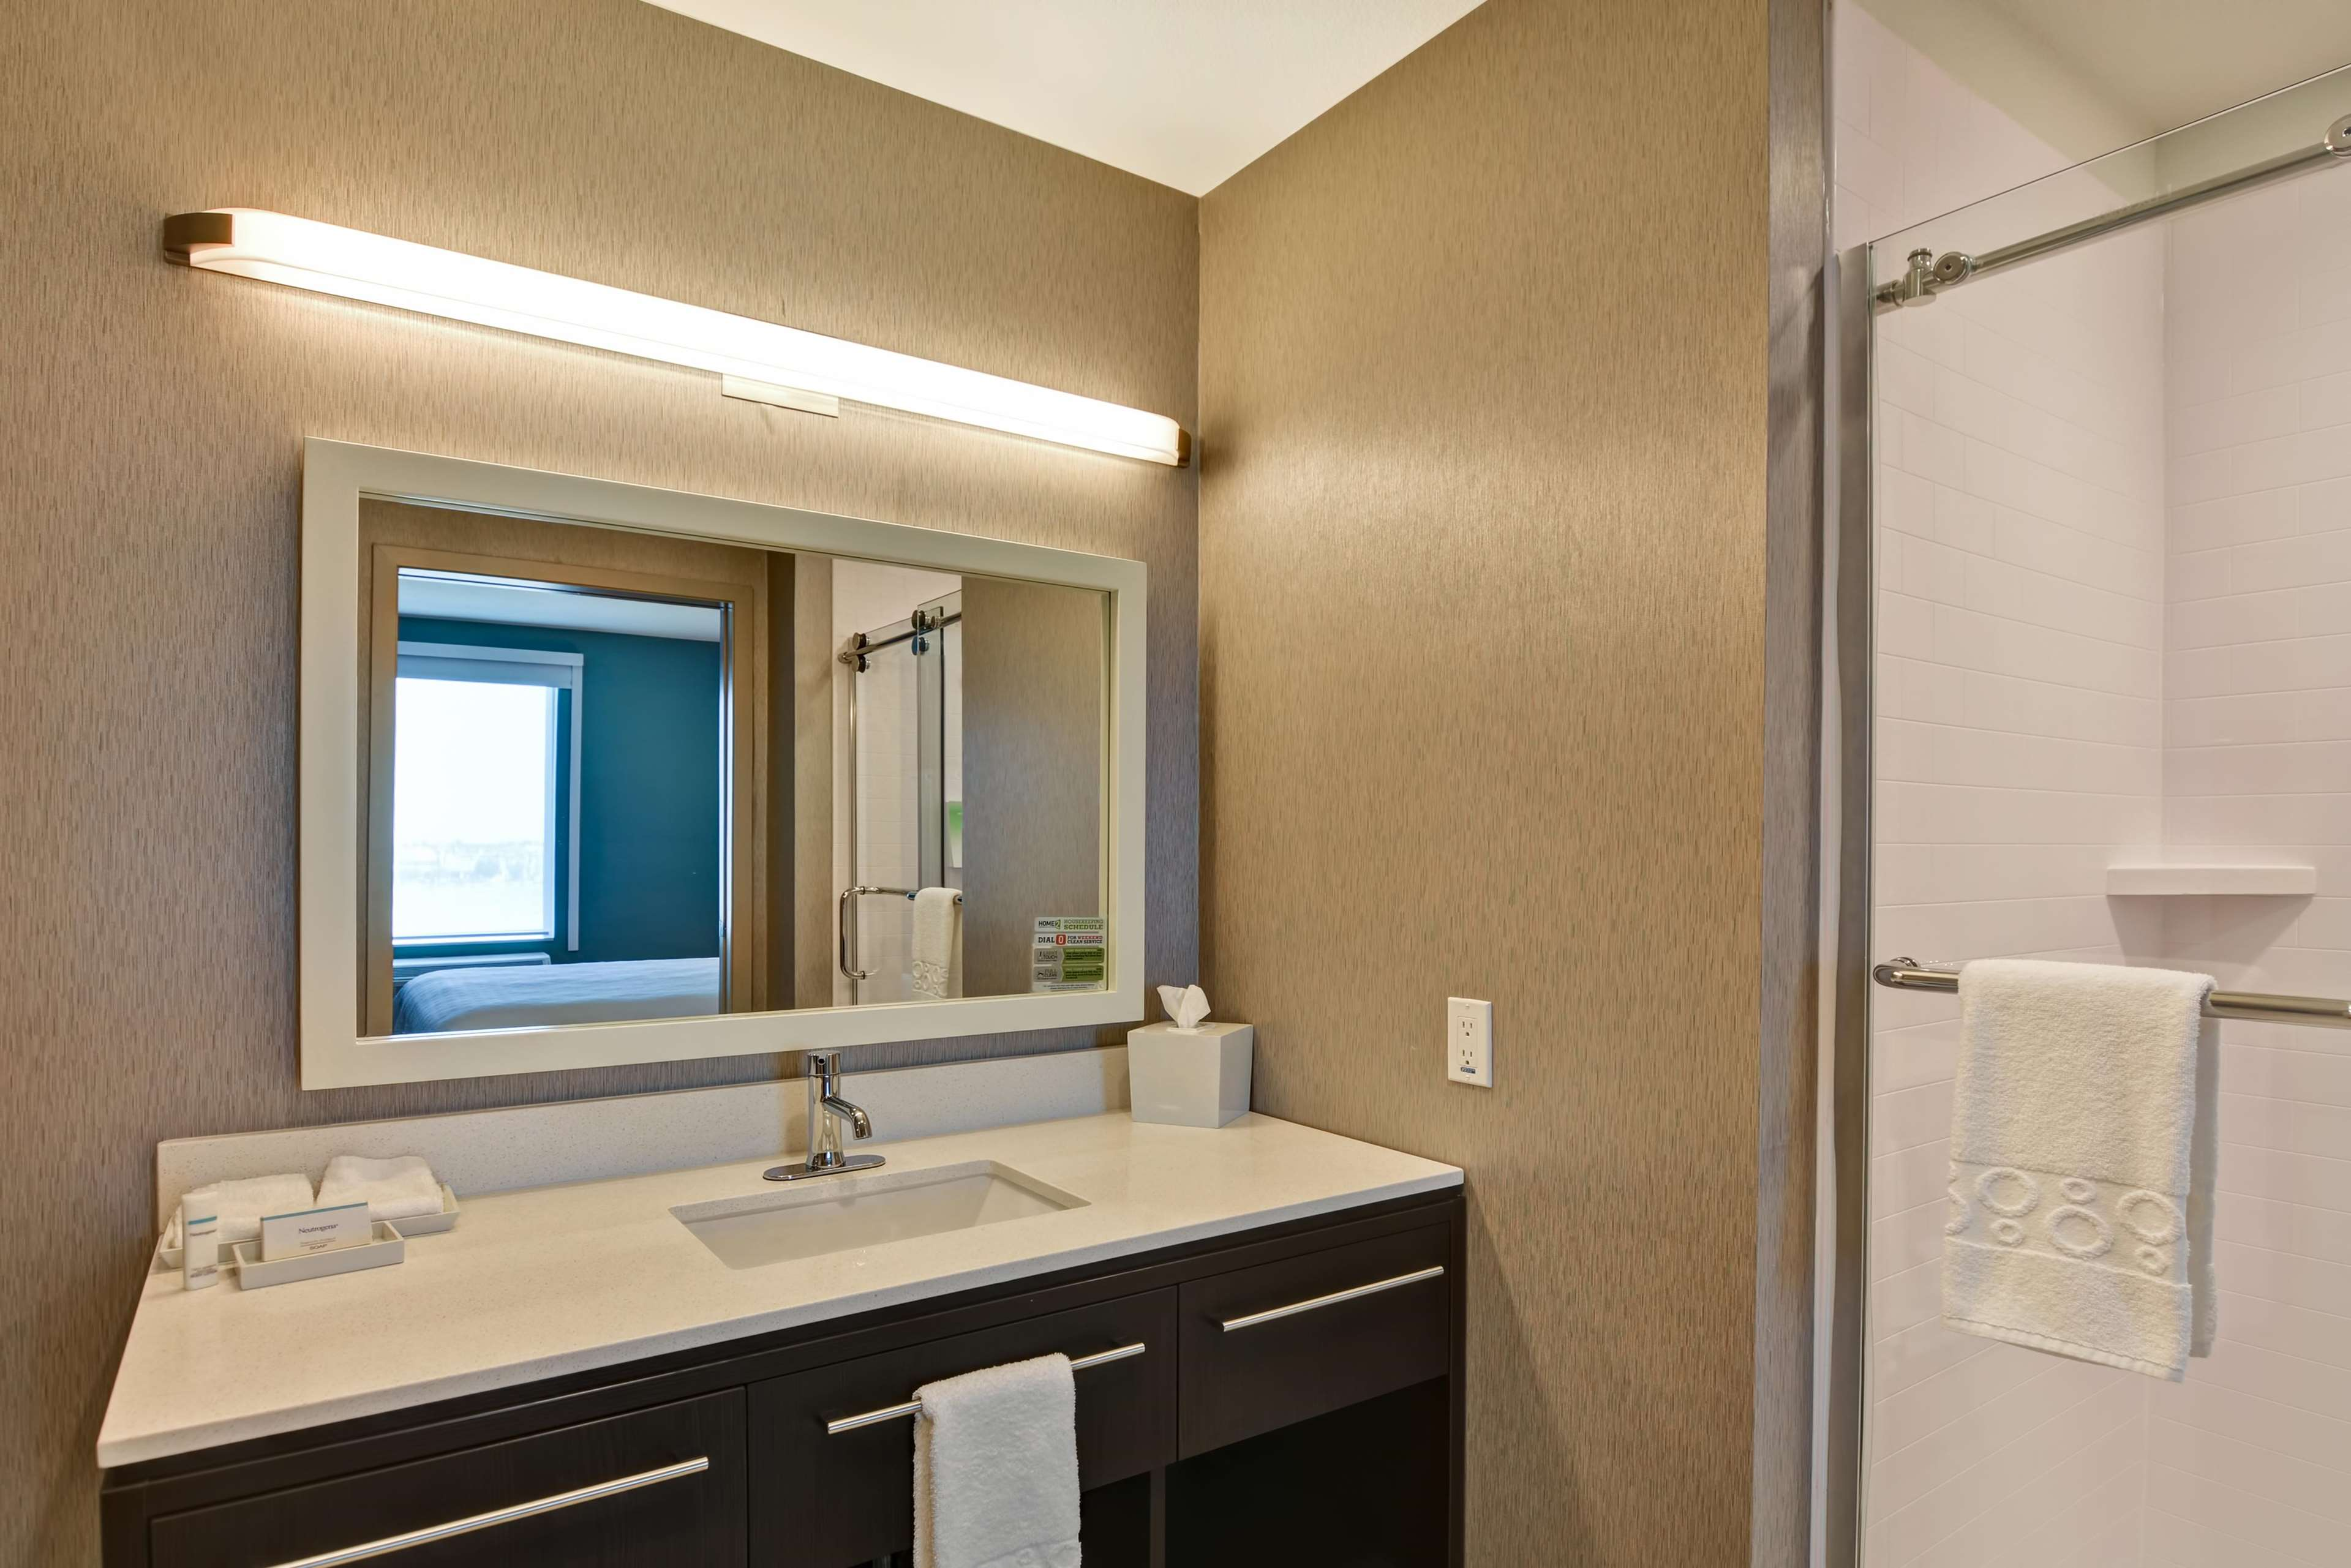 Home2 Suites by Hilton Palmdale image 13